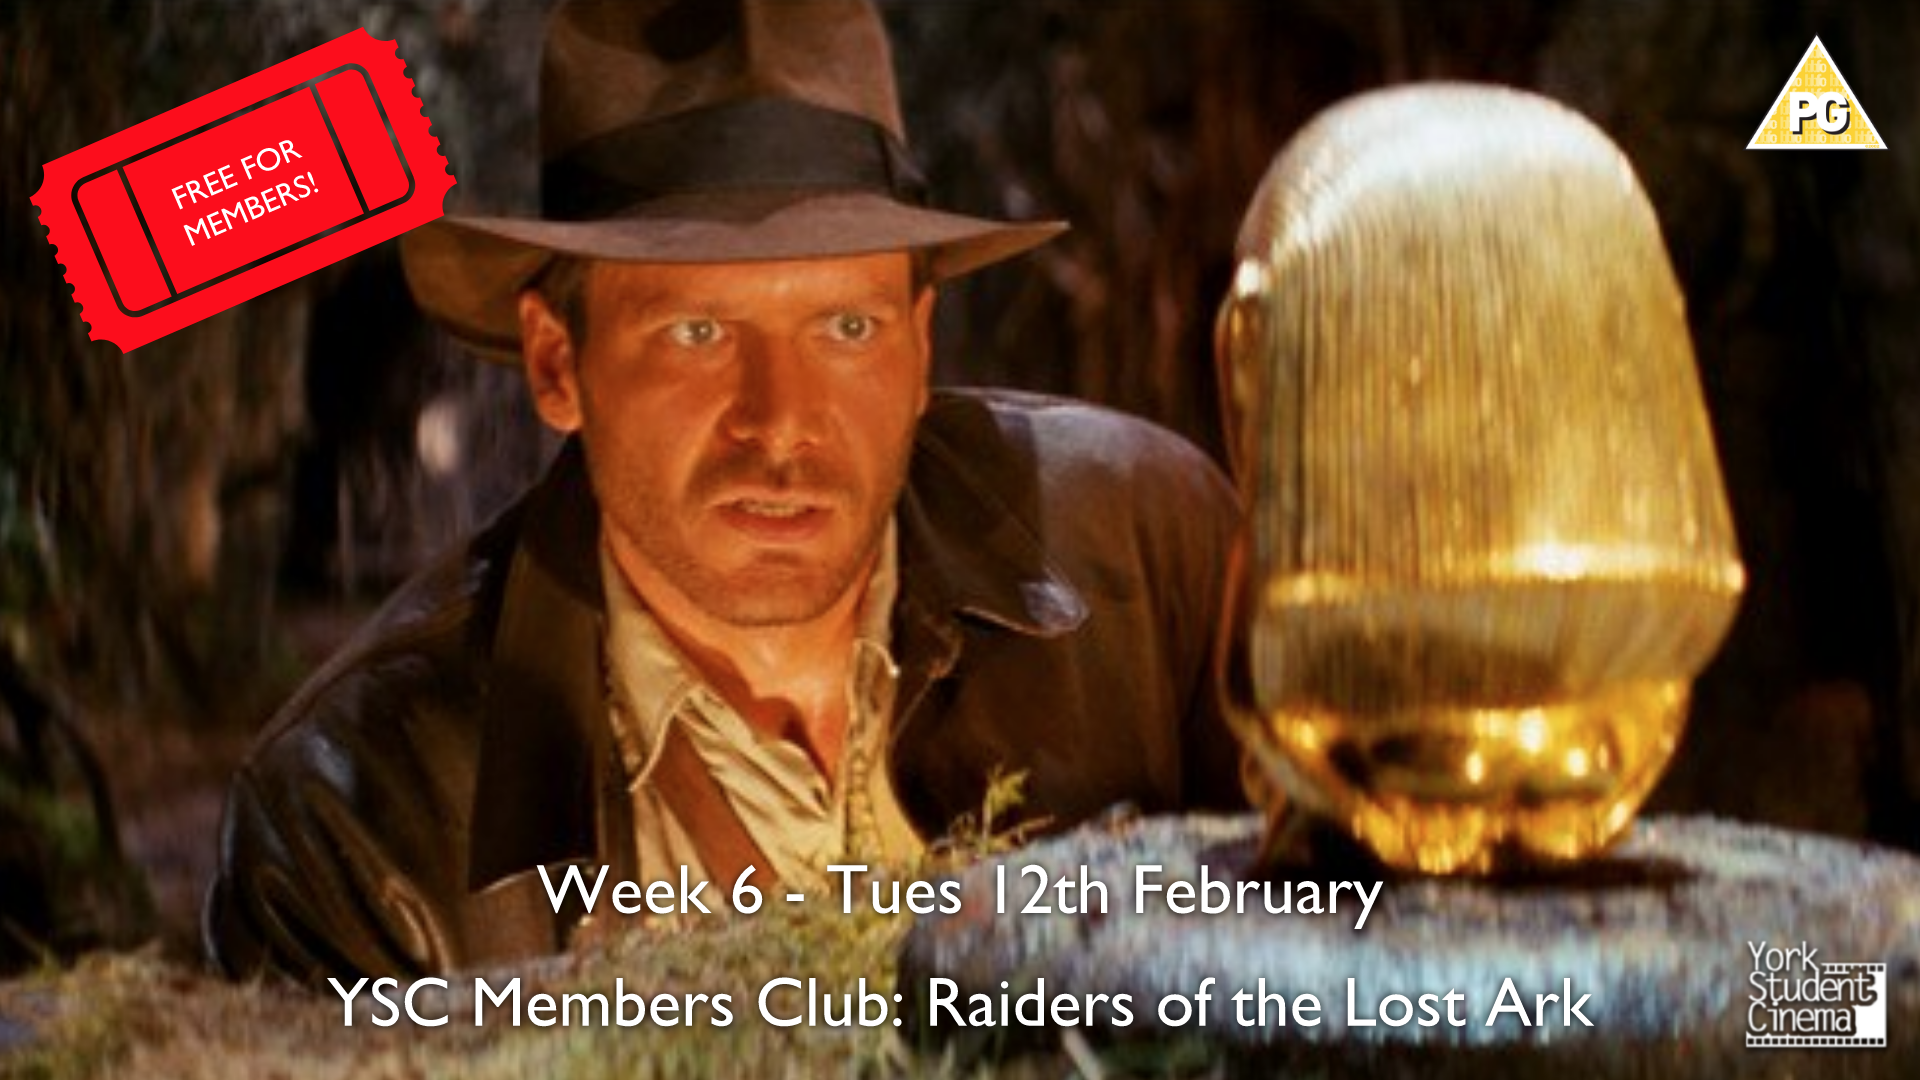 YSC Film Club: Raiders of the Lost Ark